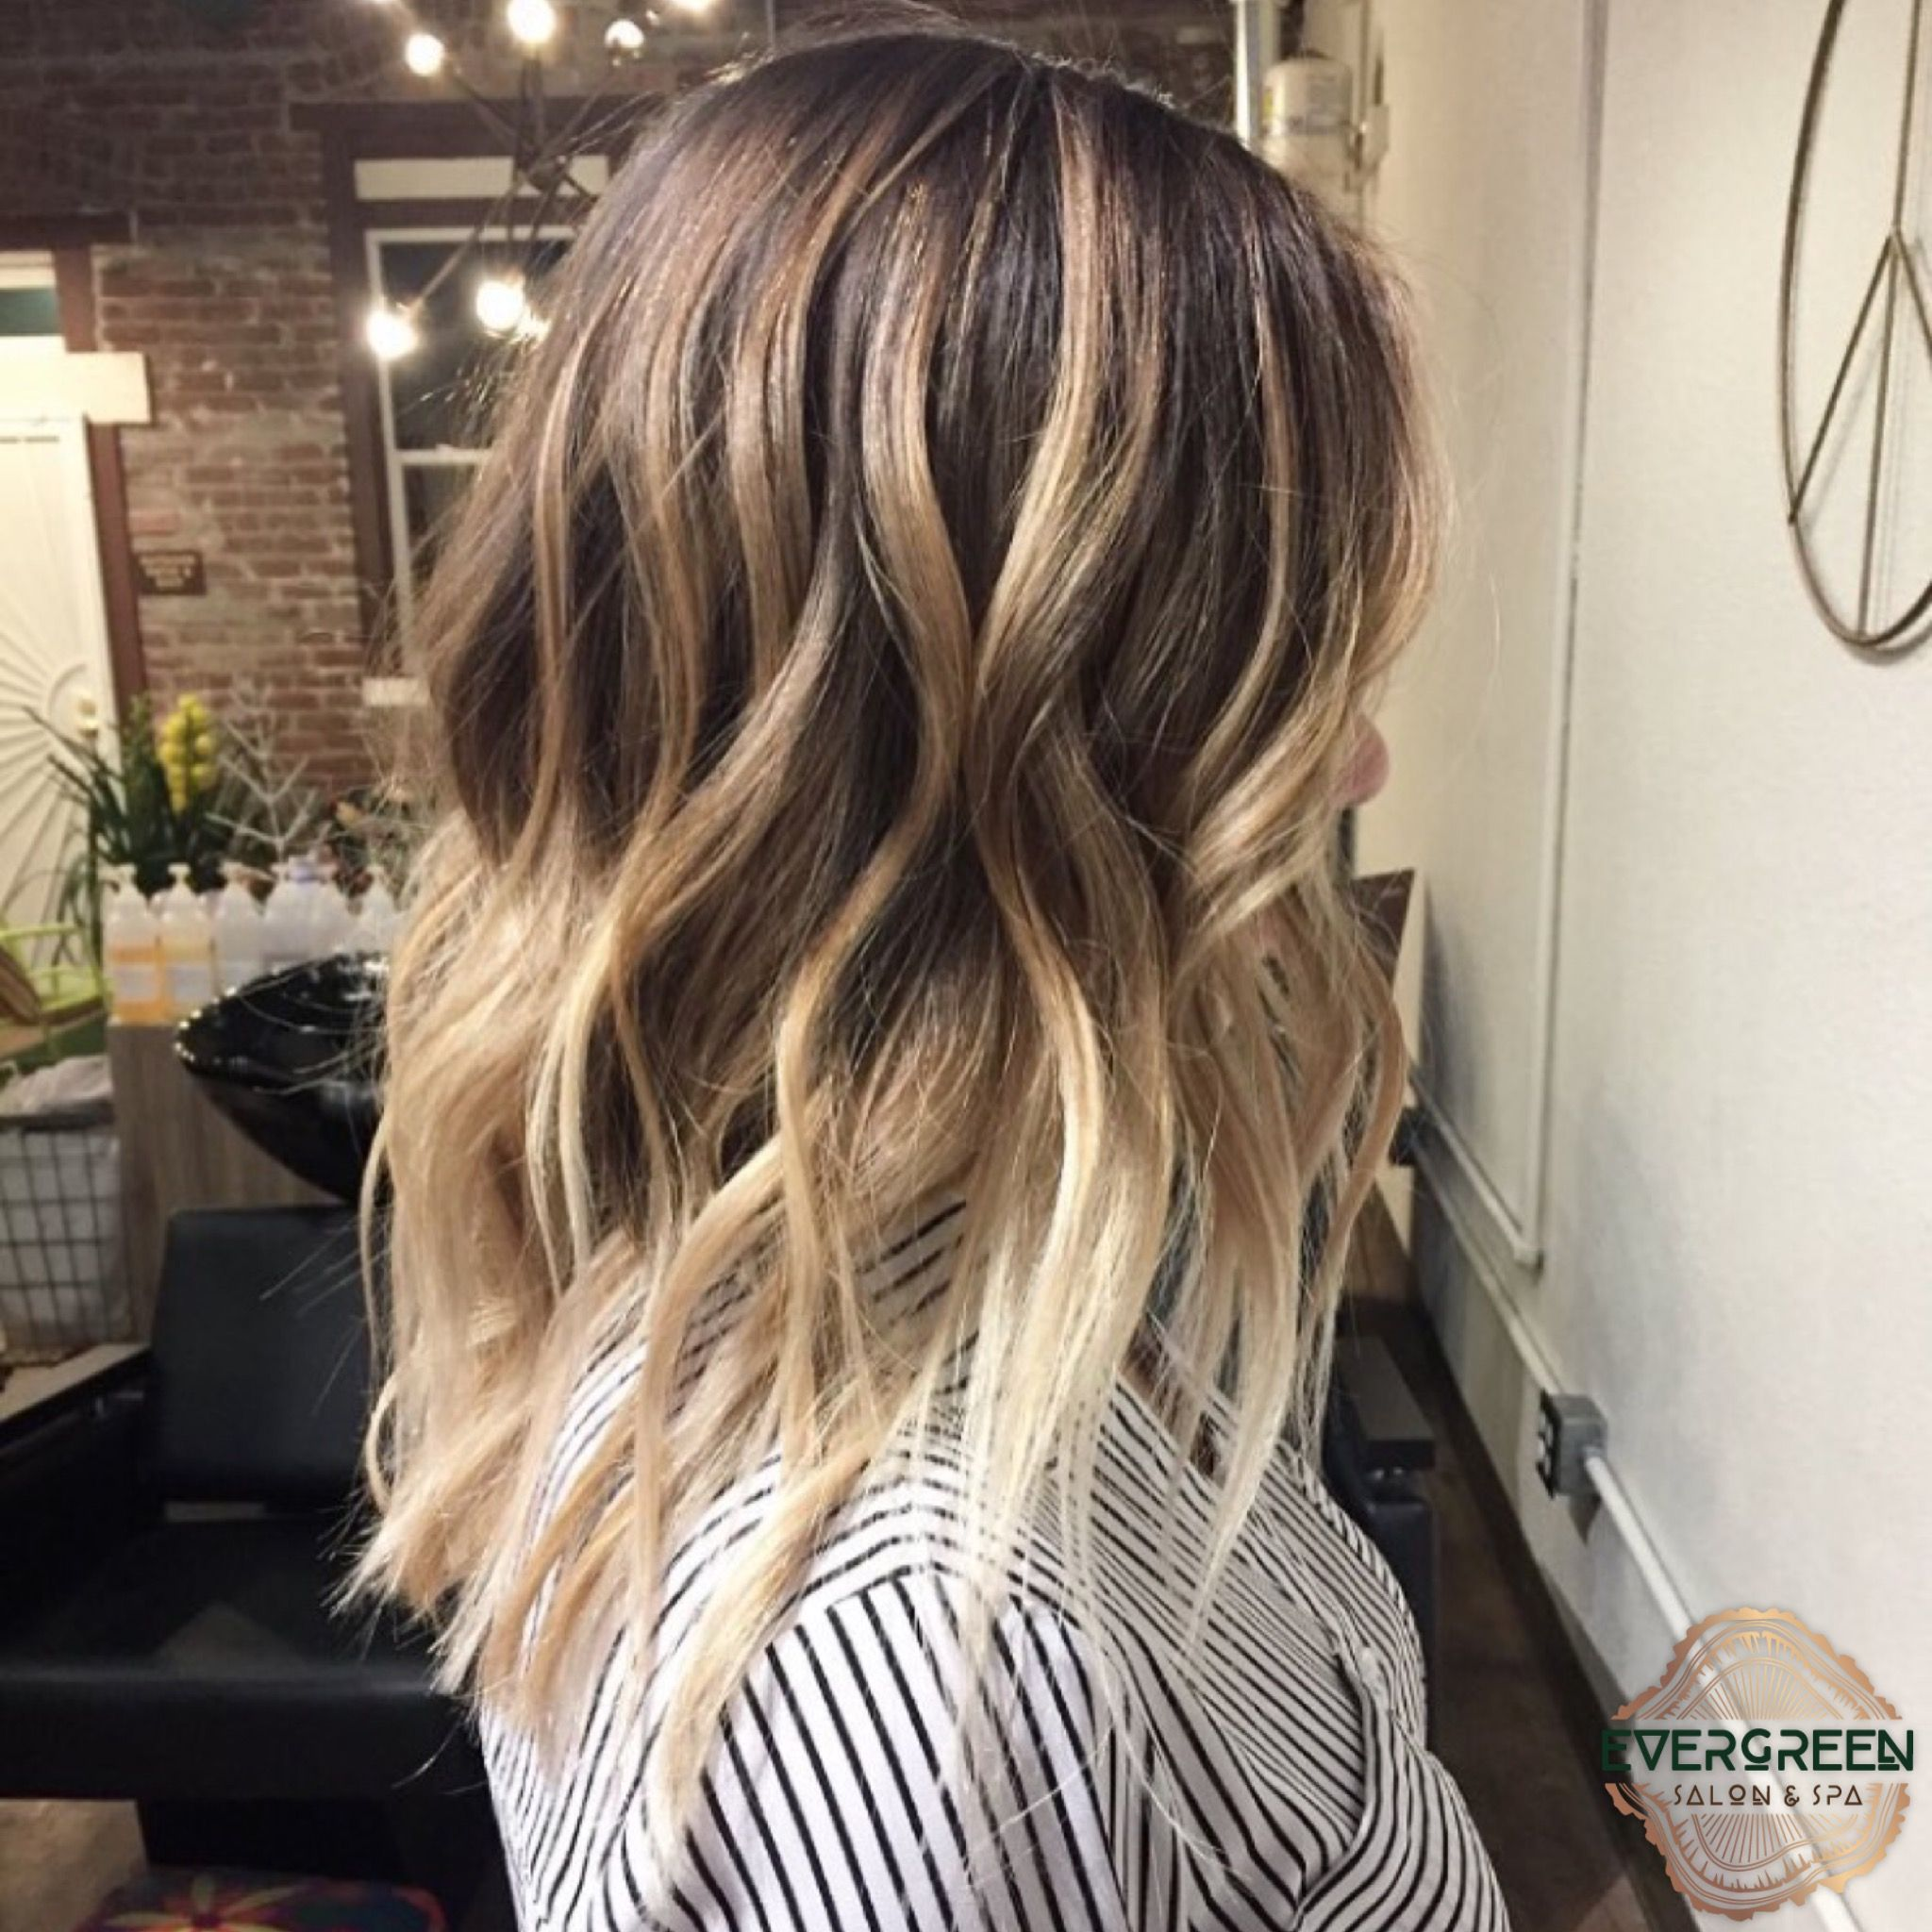 Brown Blonde Balayage Medium Length Long Curls Hair Brown To Blonde Balayage Blonde Balayage Long Curls